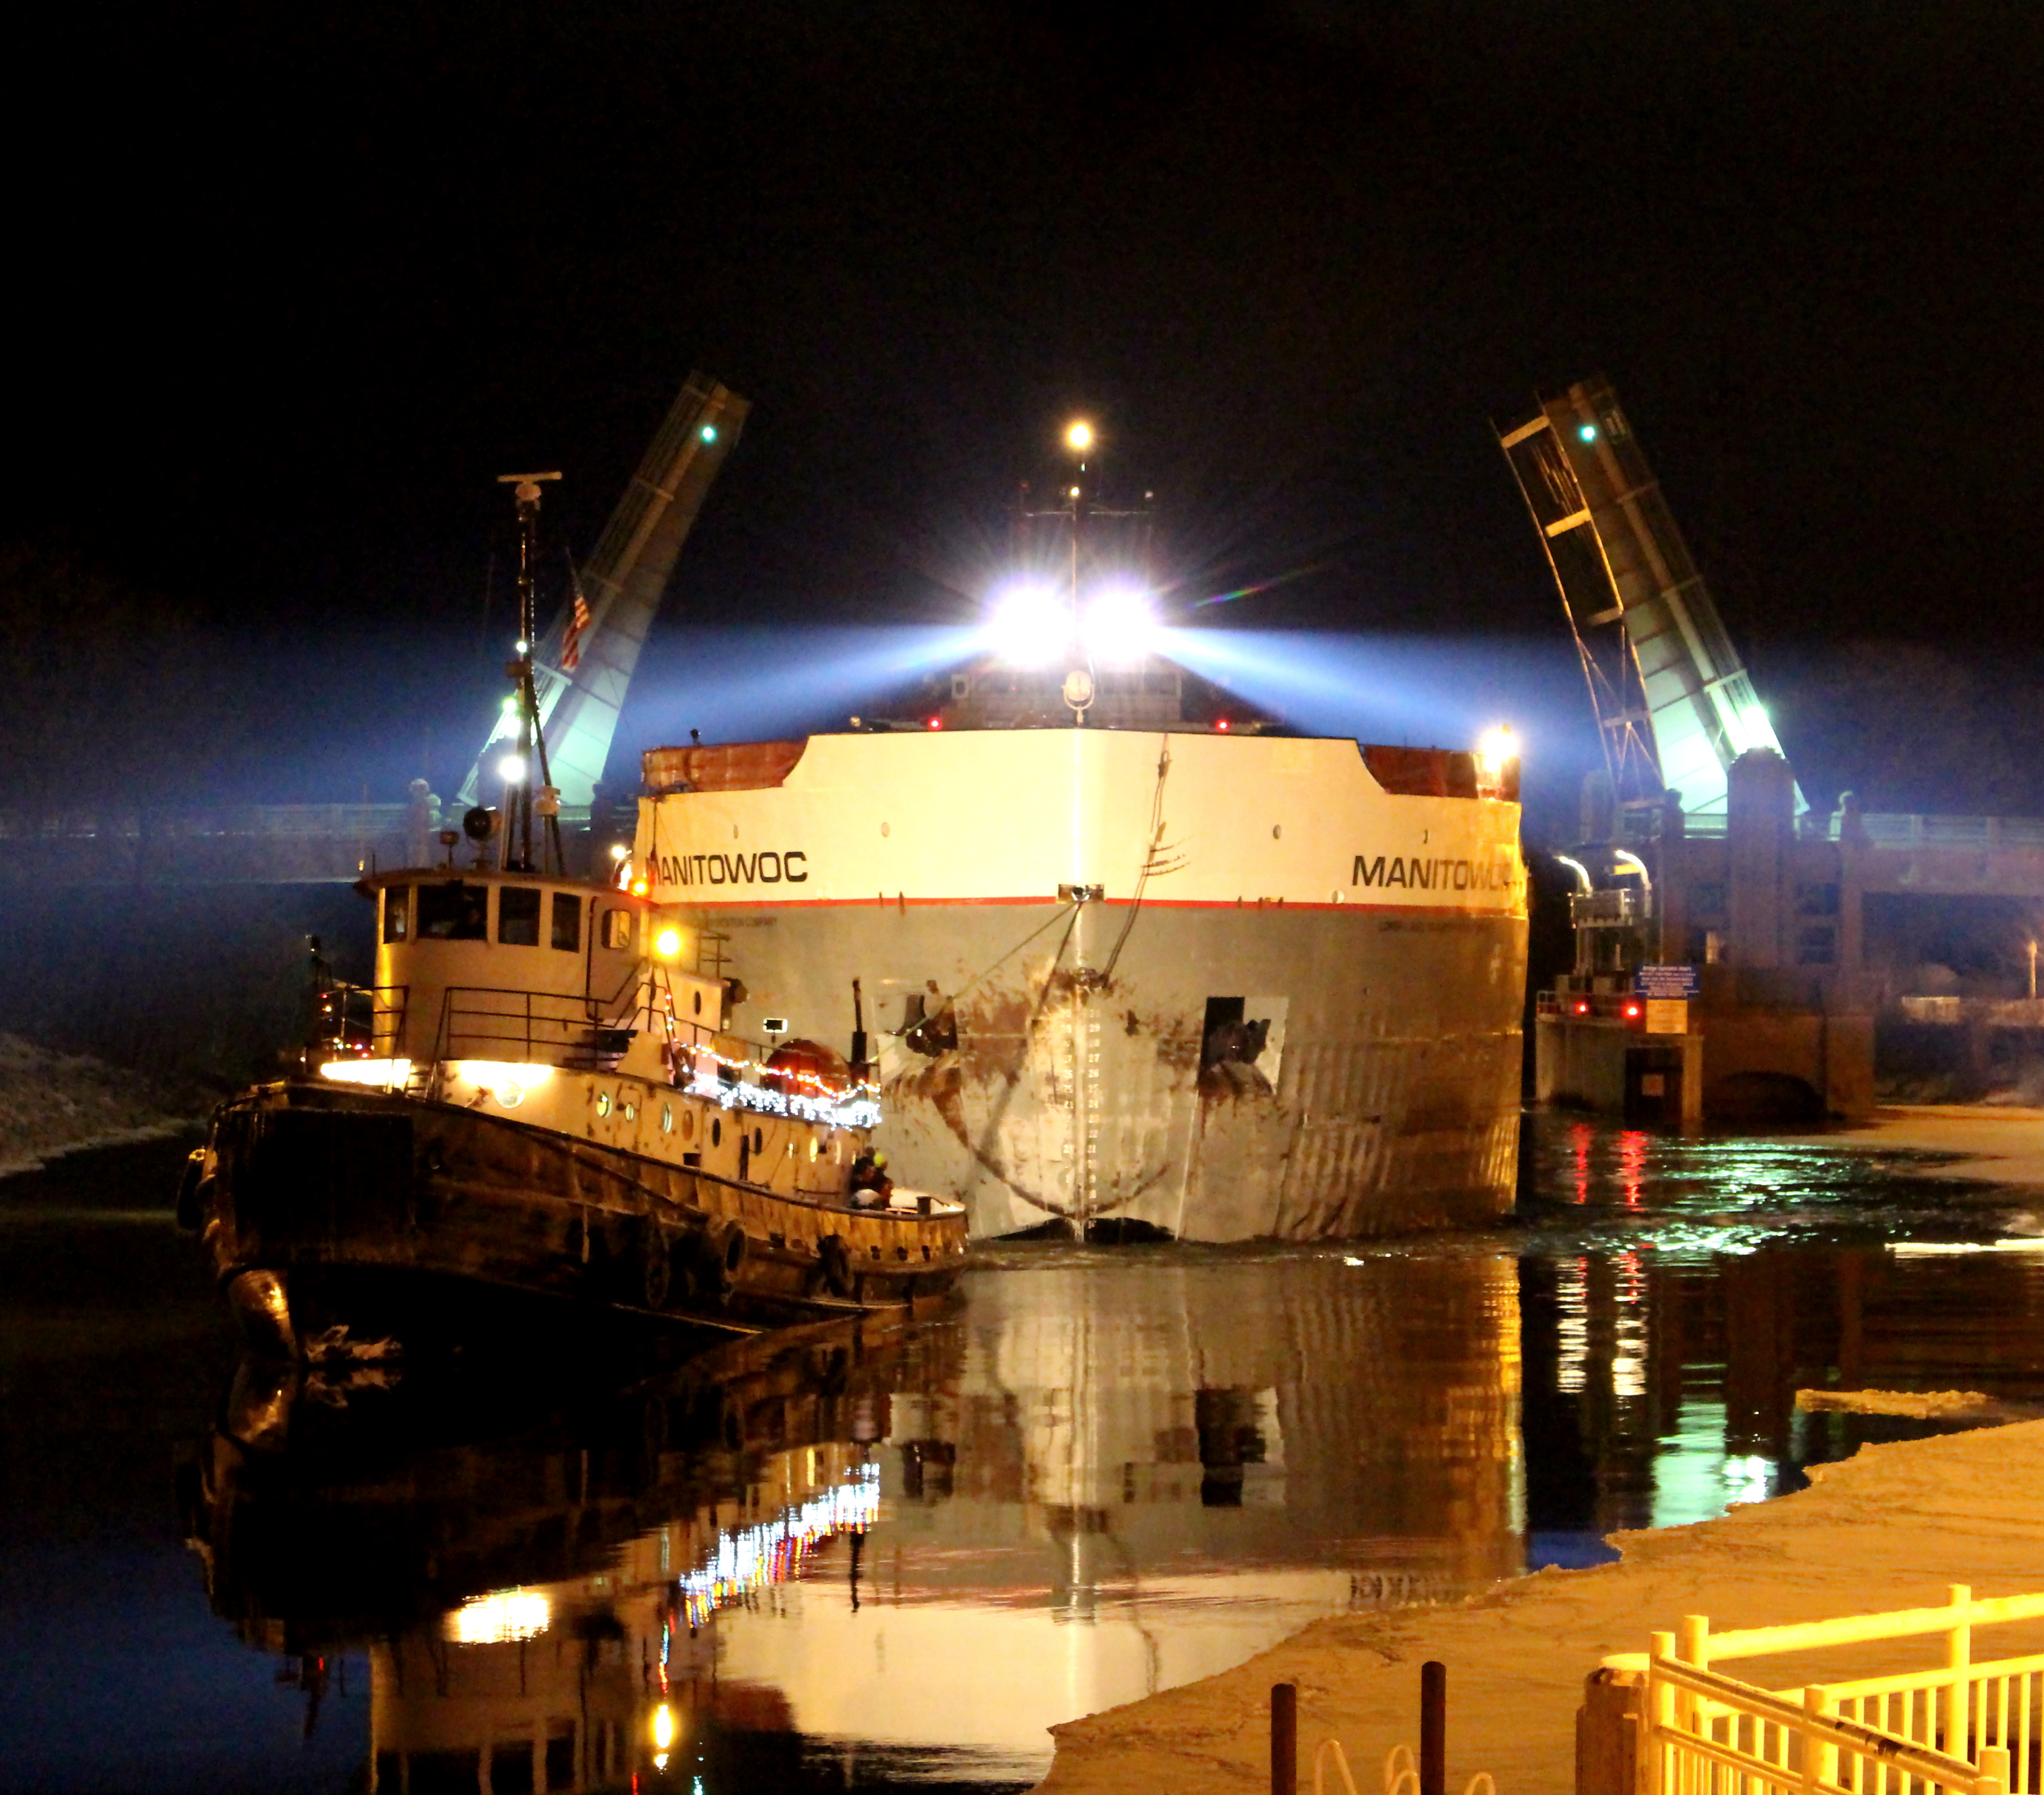 Tug Boat pulling Freighter Manitowoc through the US 31 Bridge at night